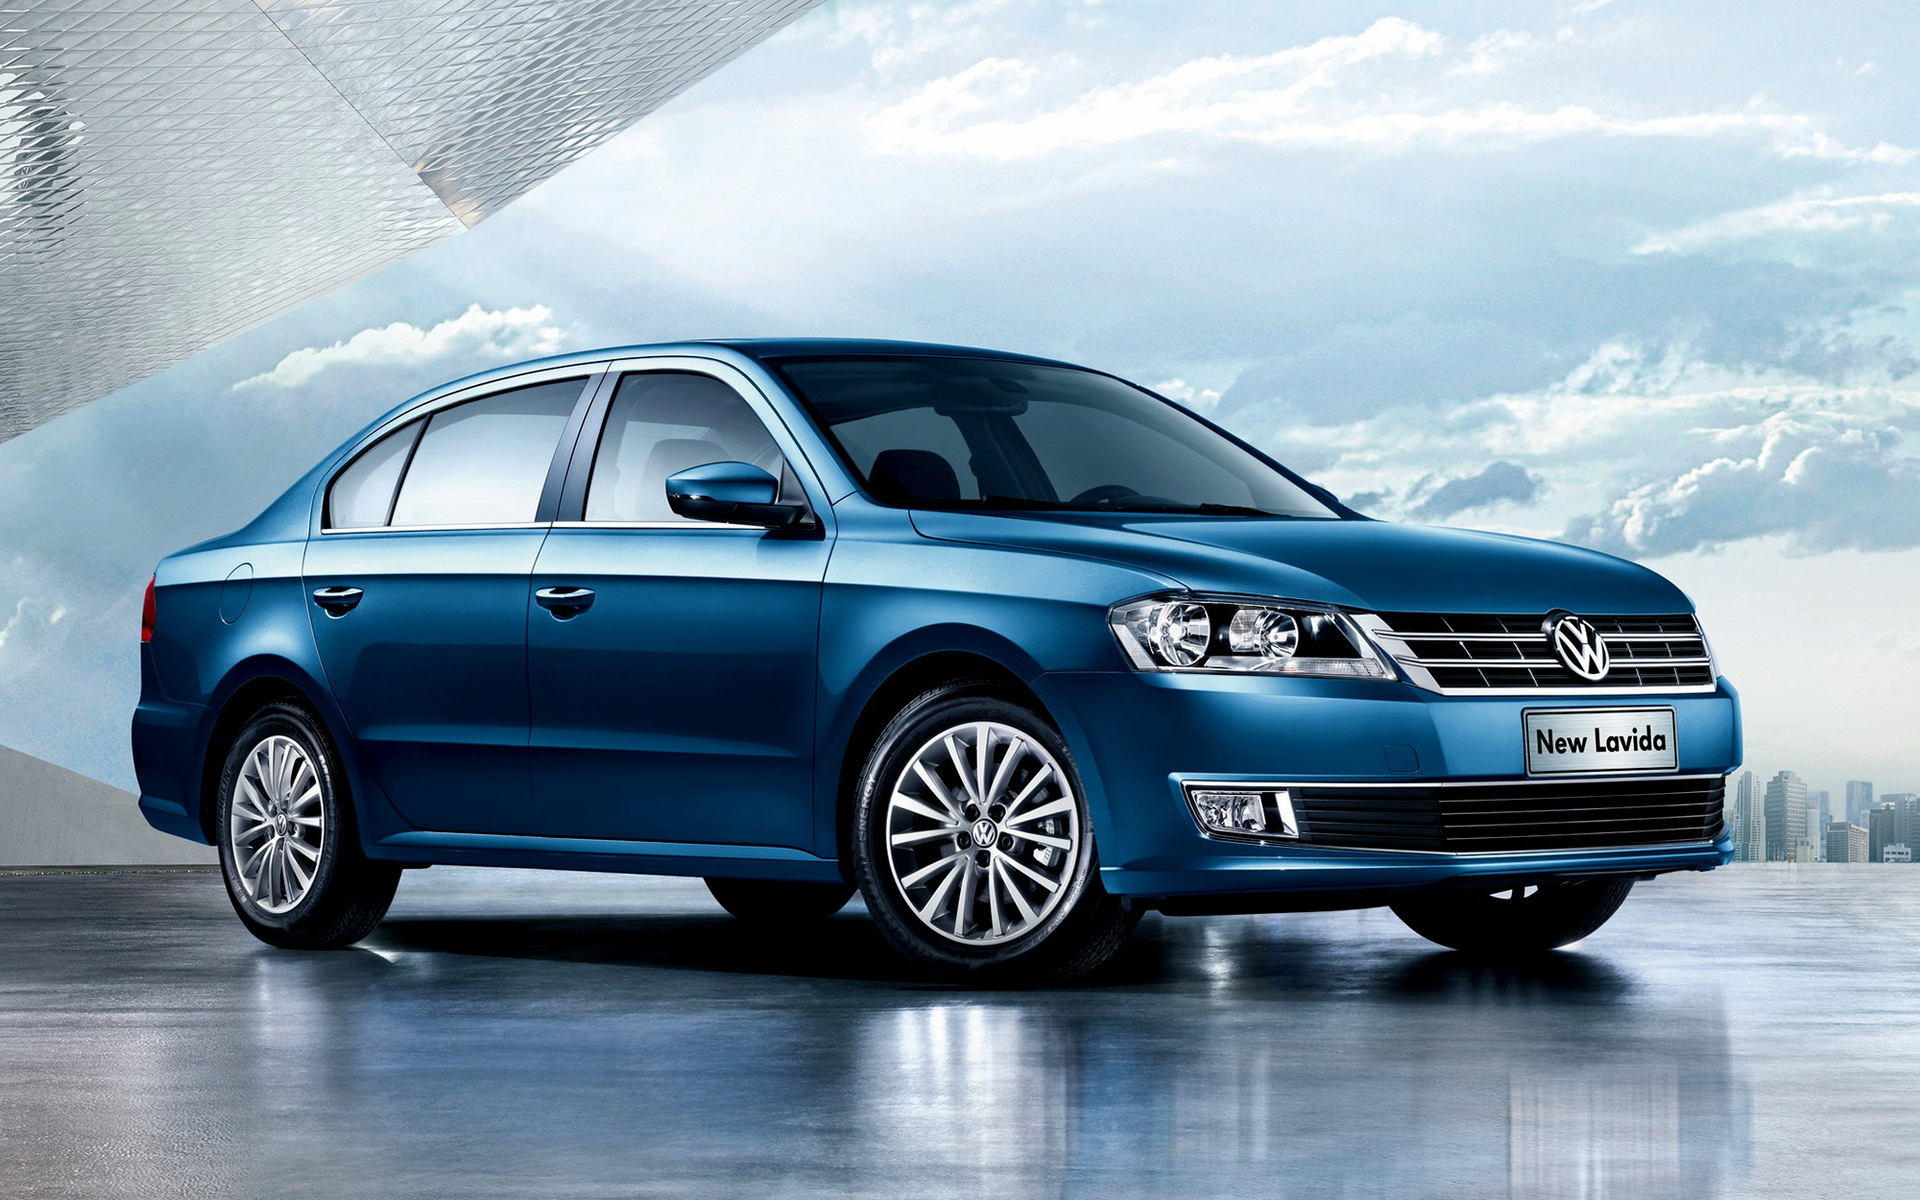 2012 Volkswagen Lavida - Wallpapers and HD Images | Car Pixel